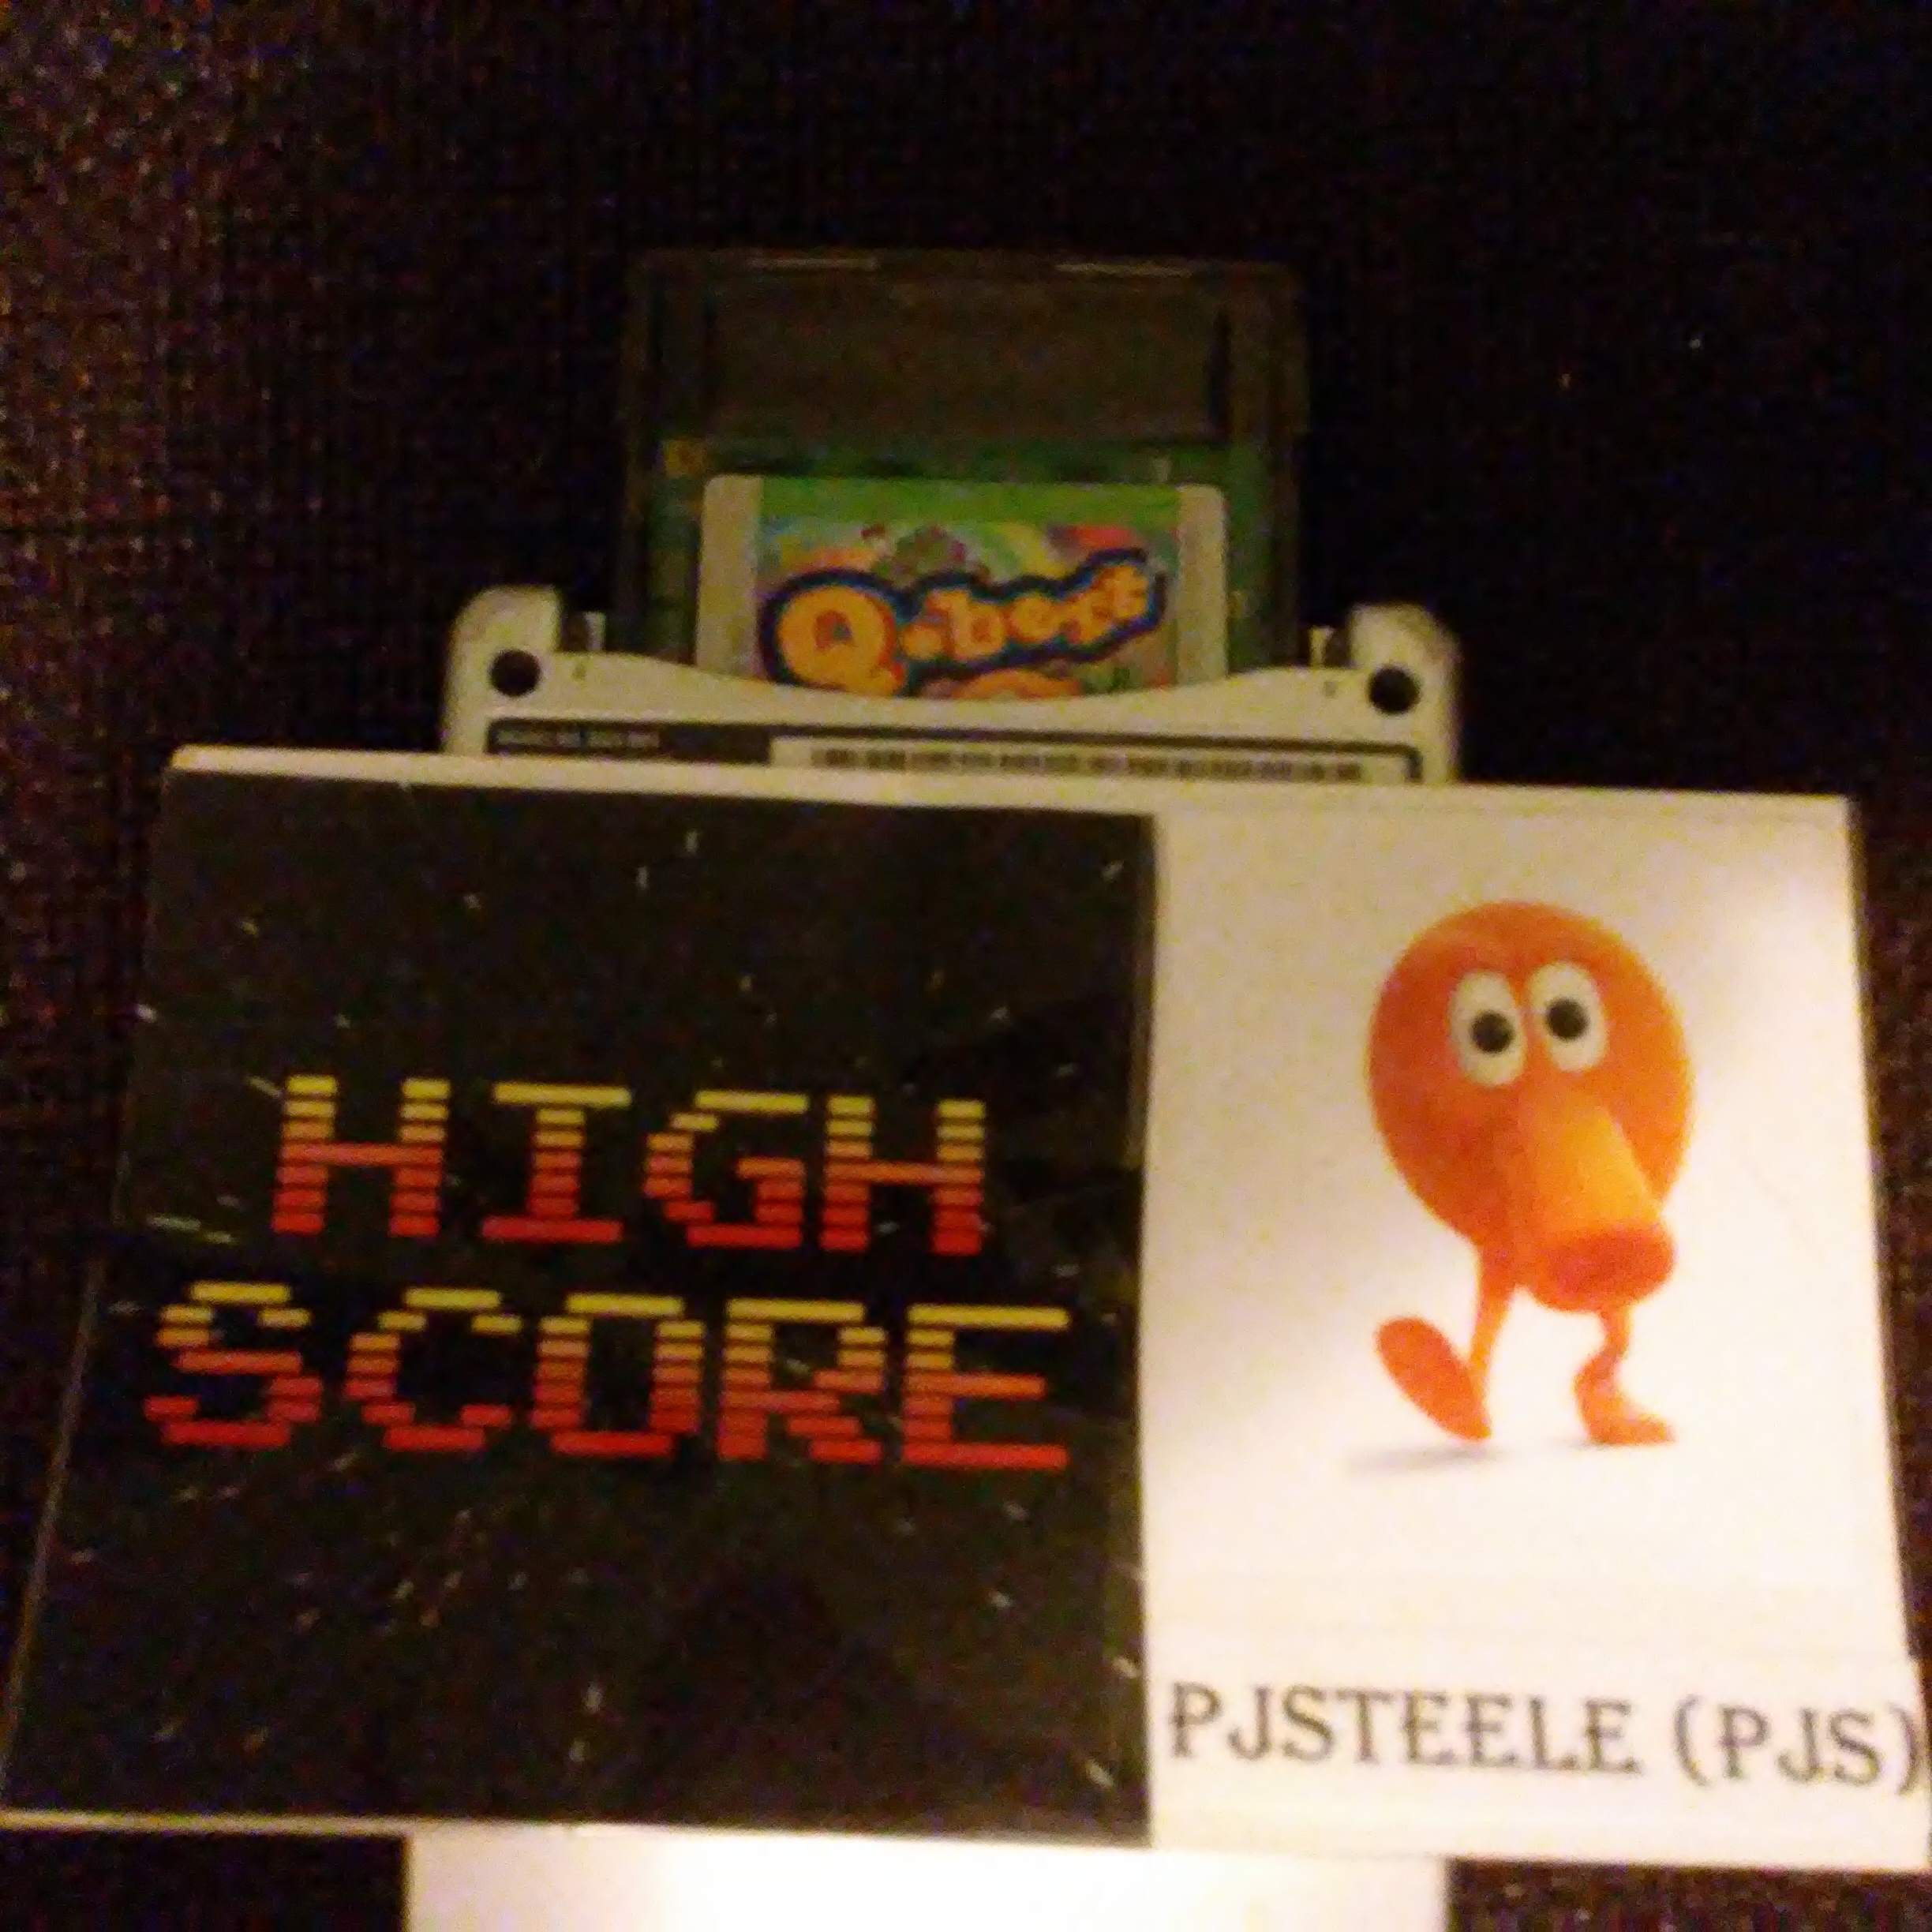 Q*Bert: Arcade 28,780 points